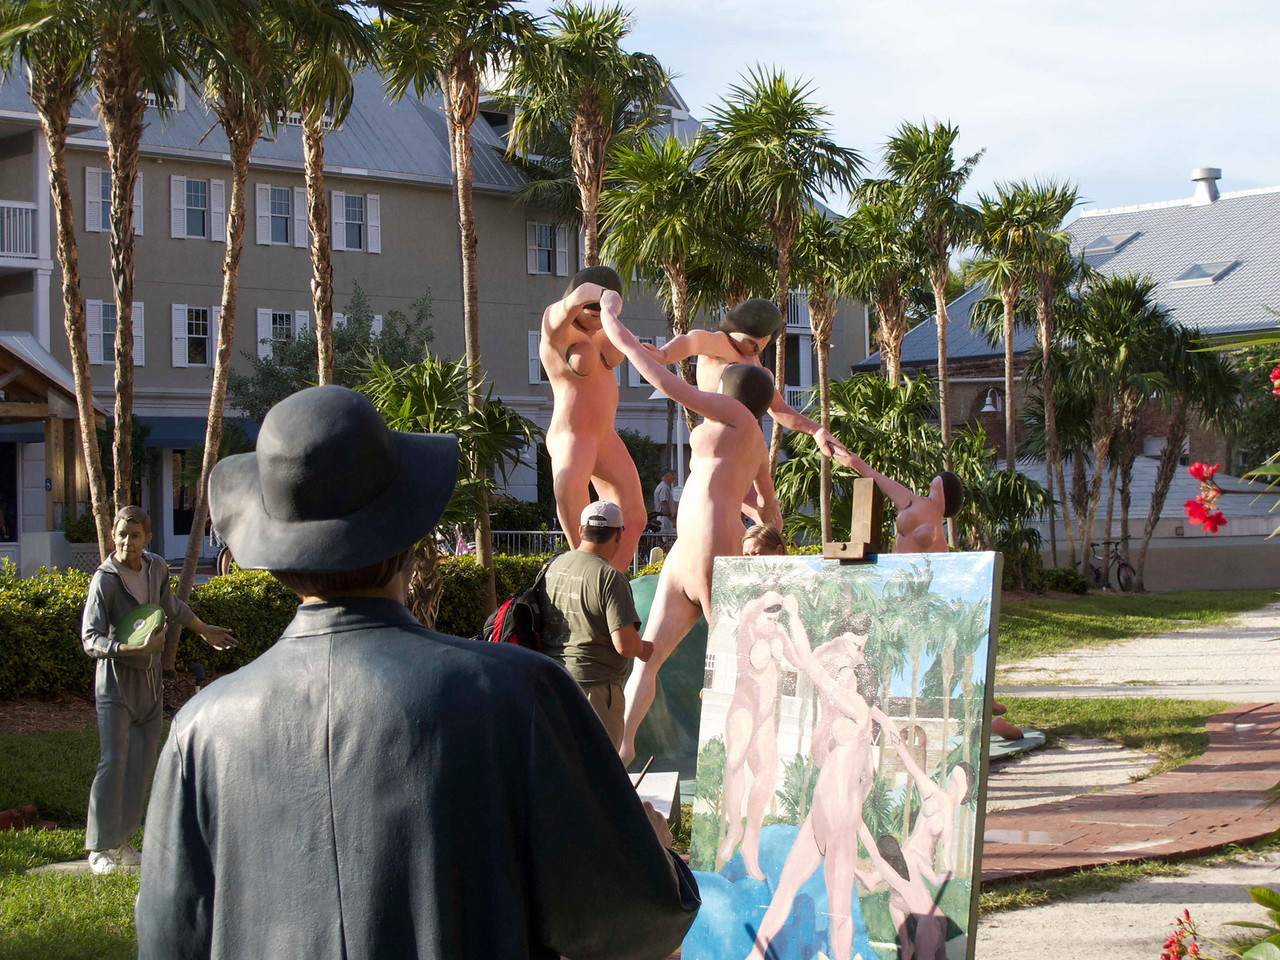 From Key West's museum. I really like their sculpture garden.